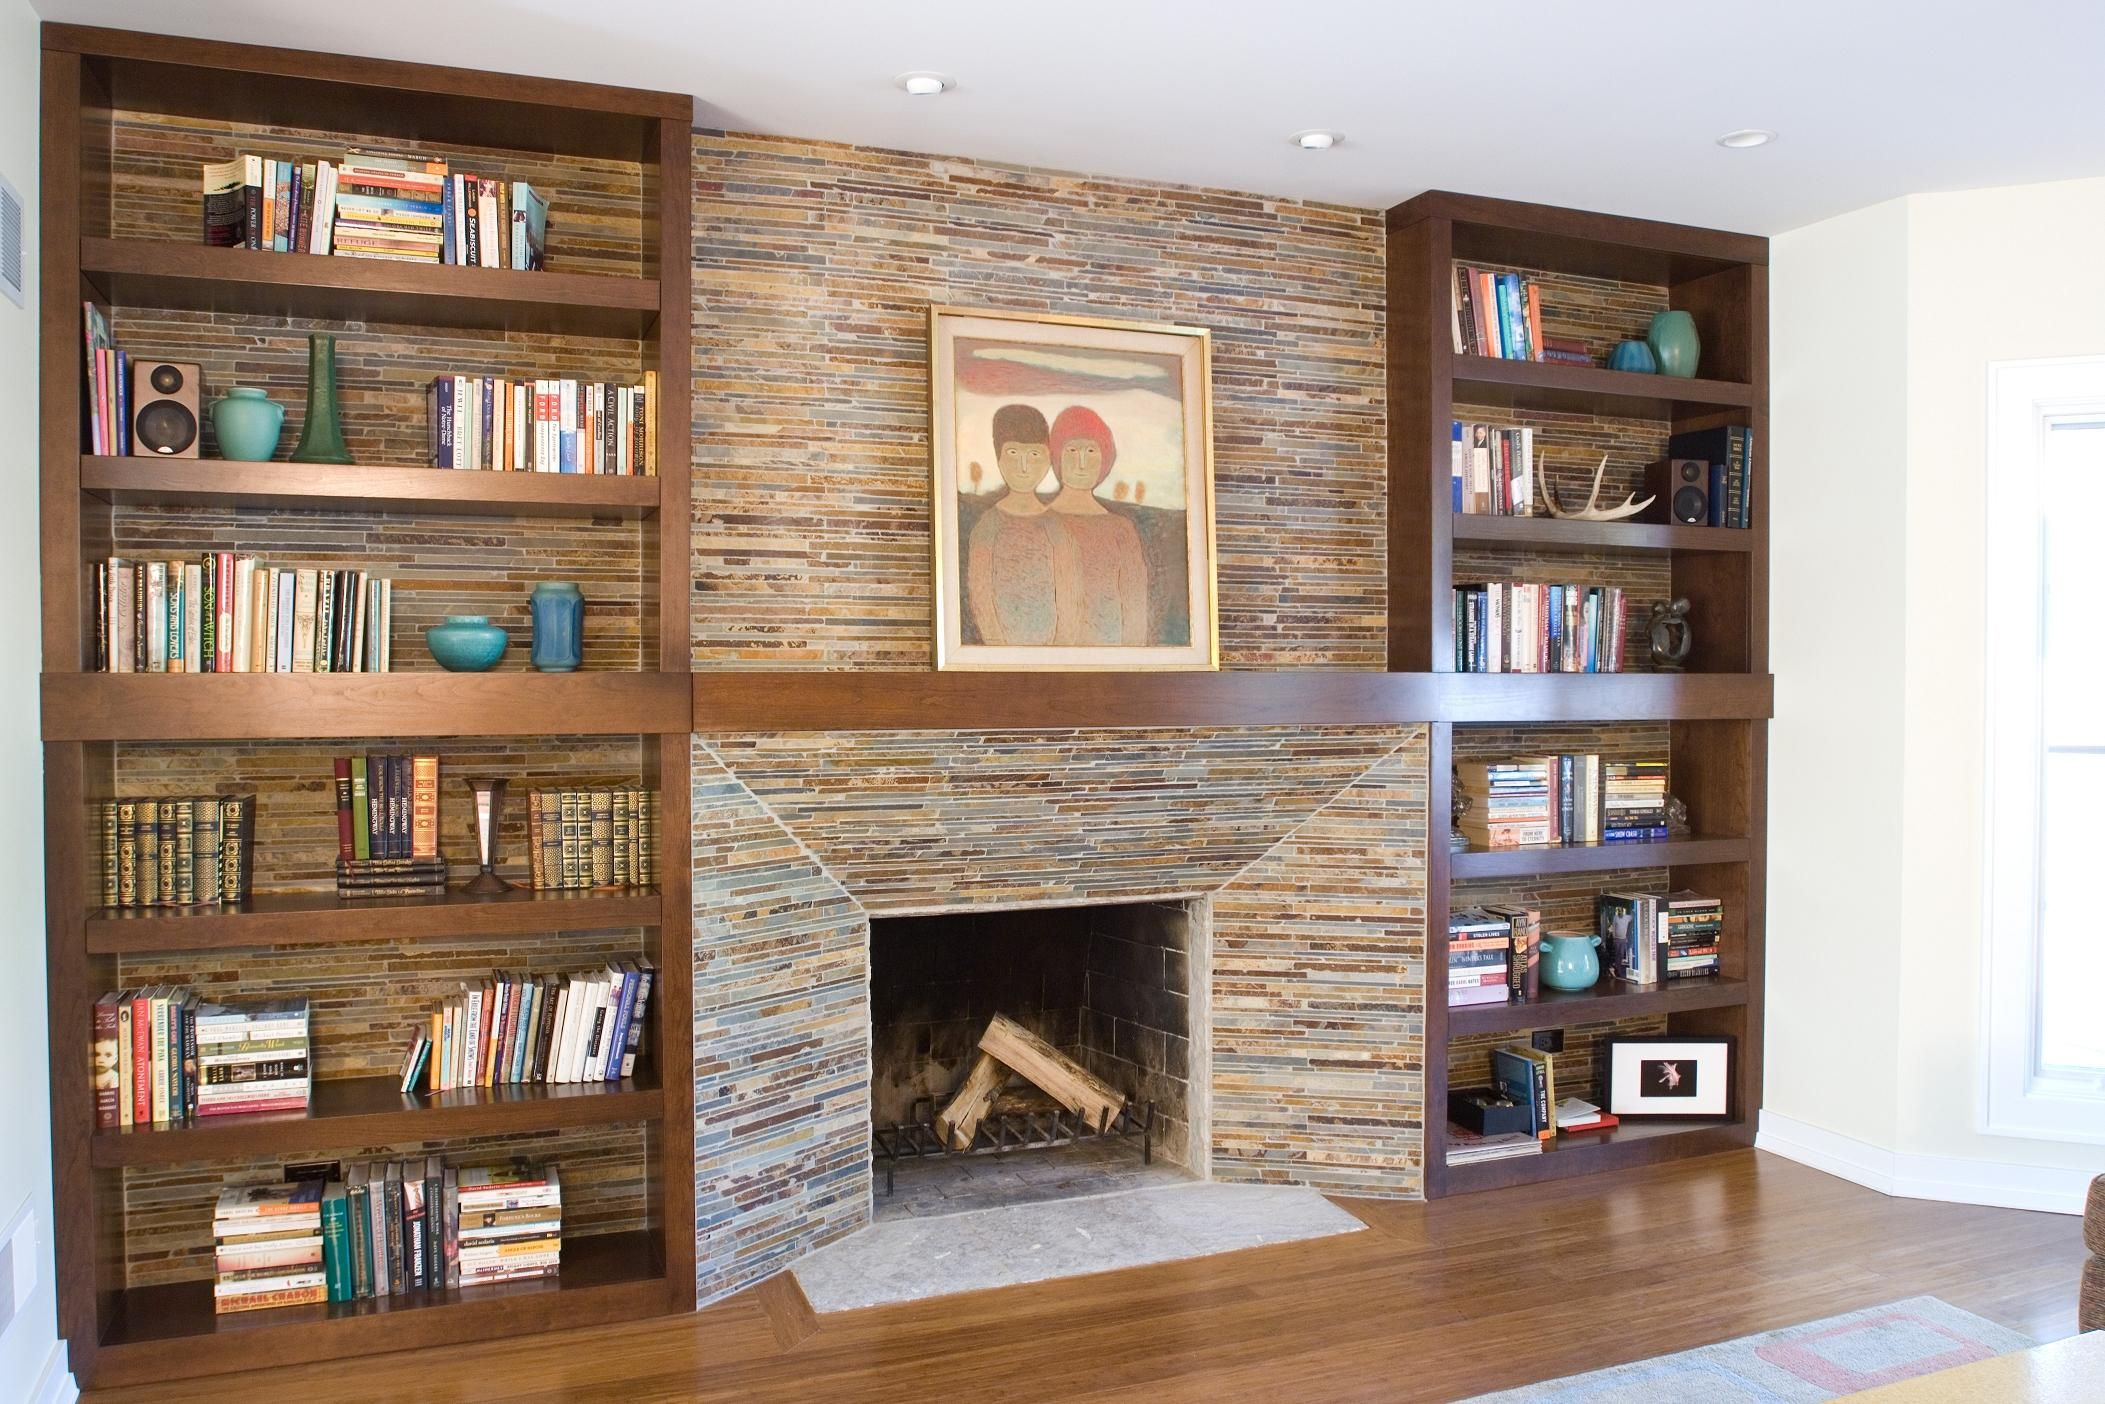 Fireplace Bookshelves Design Made Of Wood In Rectangular Shape - Fireplace with bookshelves